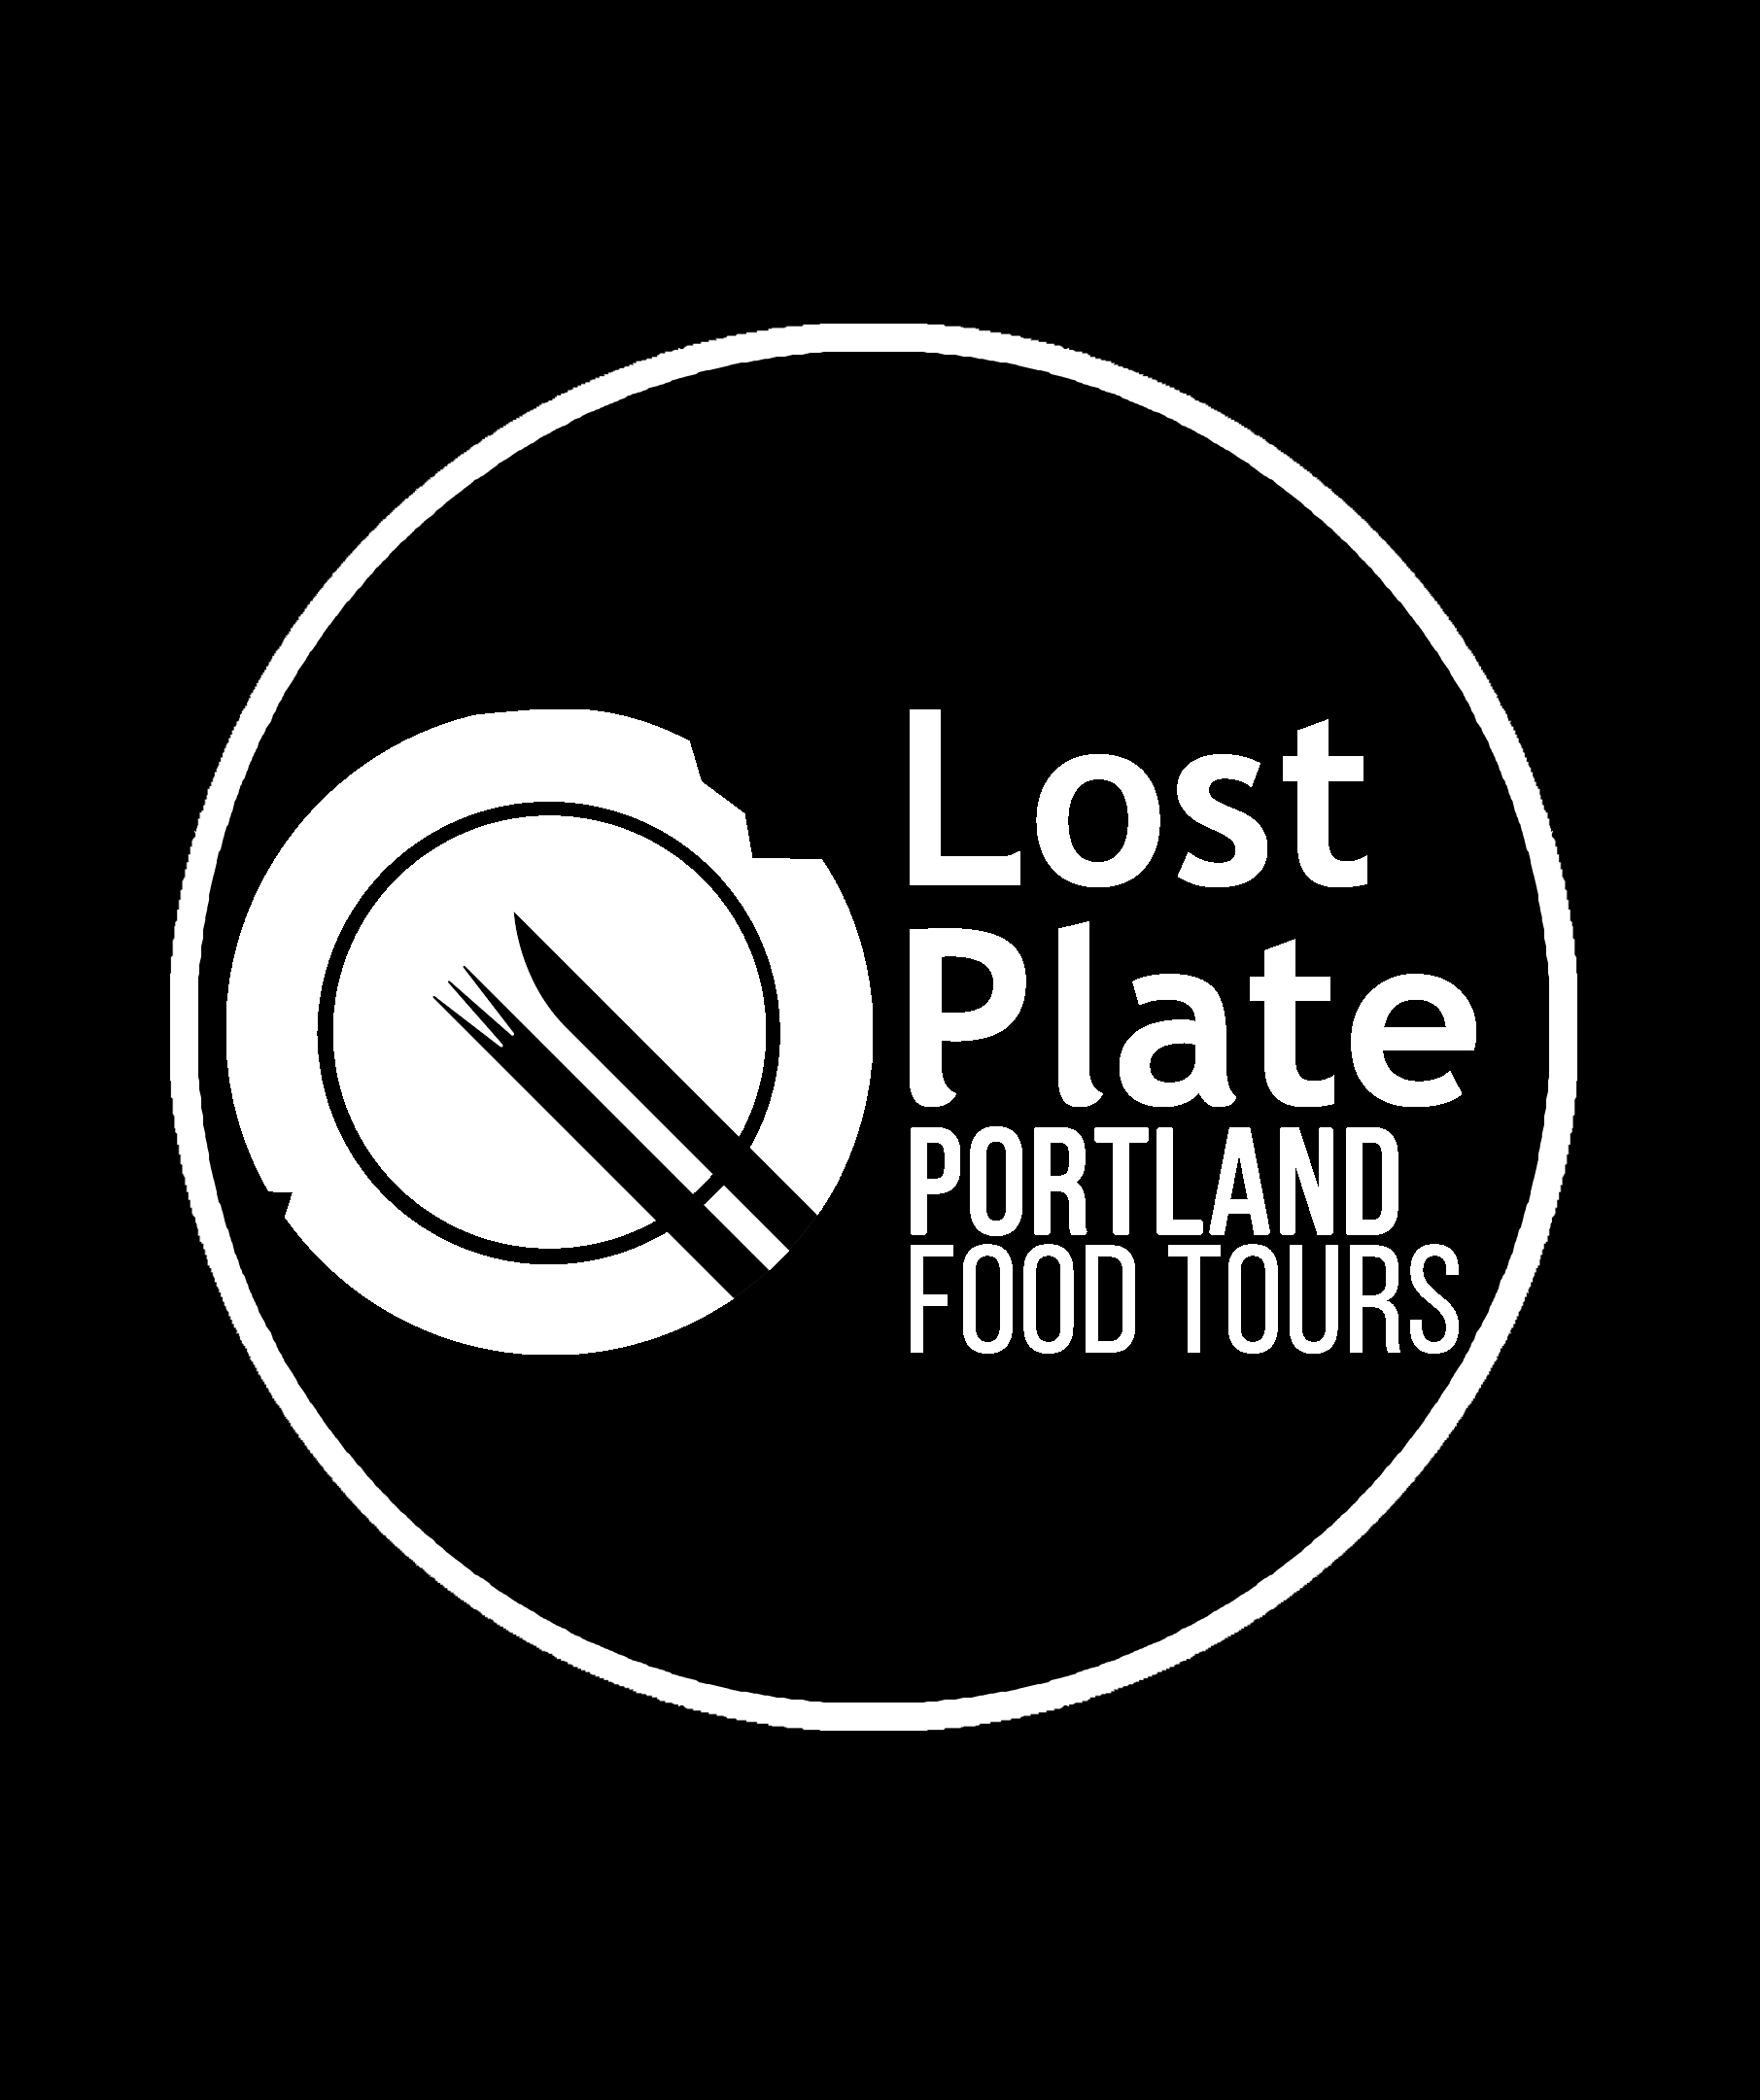 LOST PLATE FOOD TOURS - PORTLAND, OREGON    READ MORE